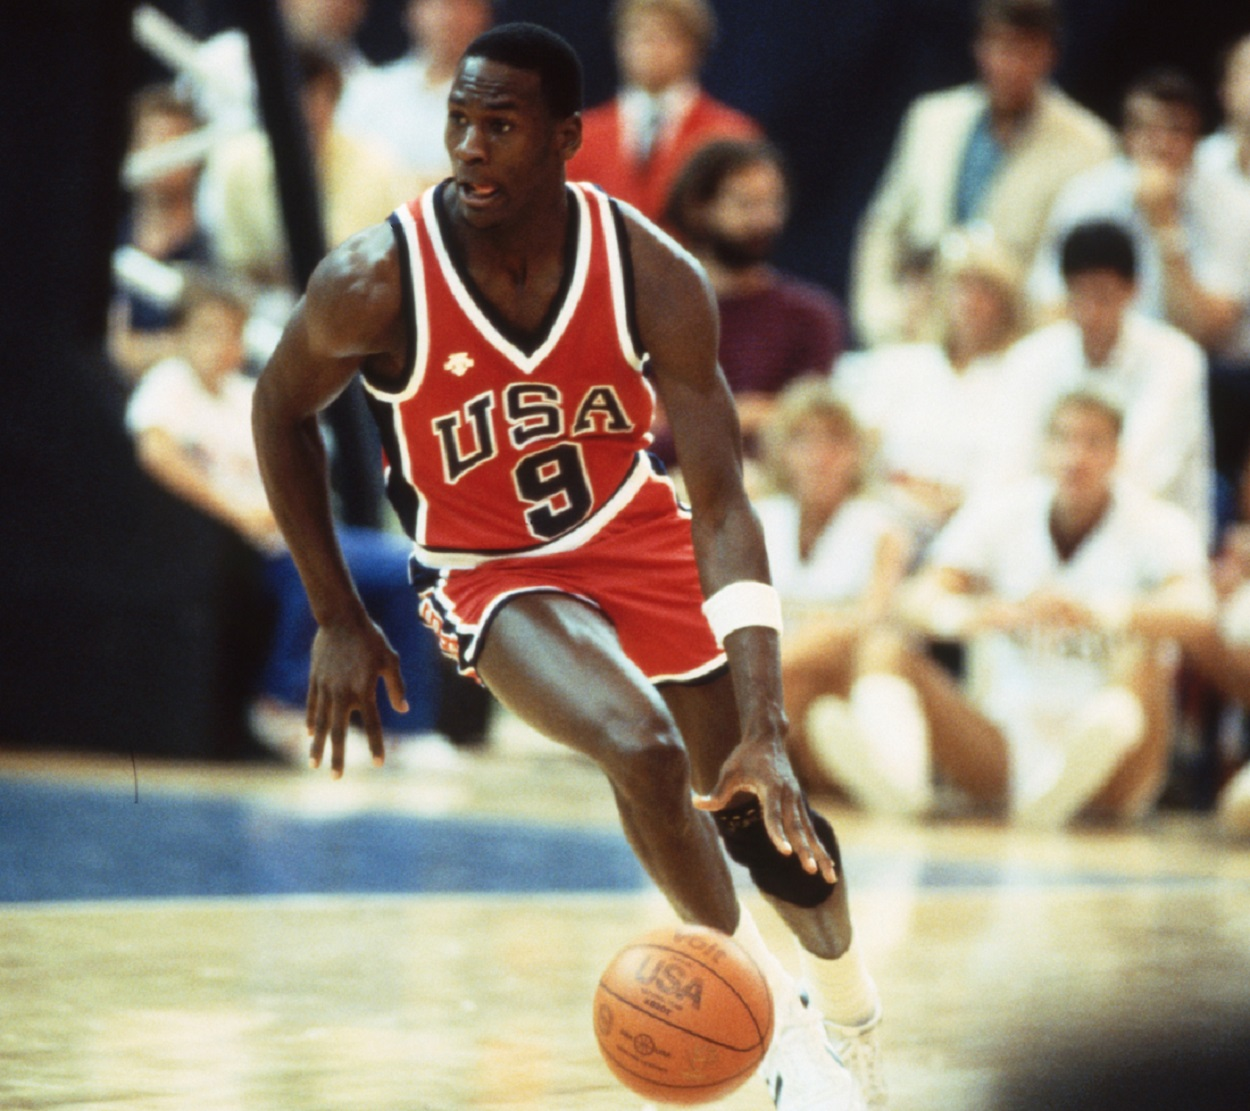 Michael Jordan during a game for Team USA at the 1984 Summer Olympics